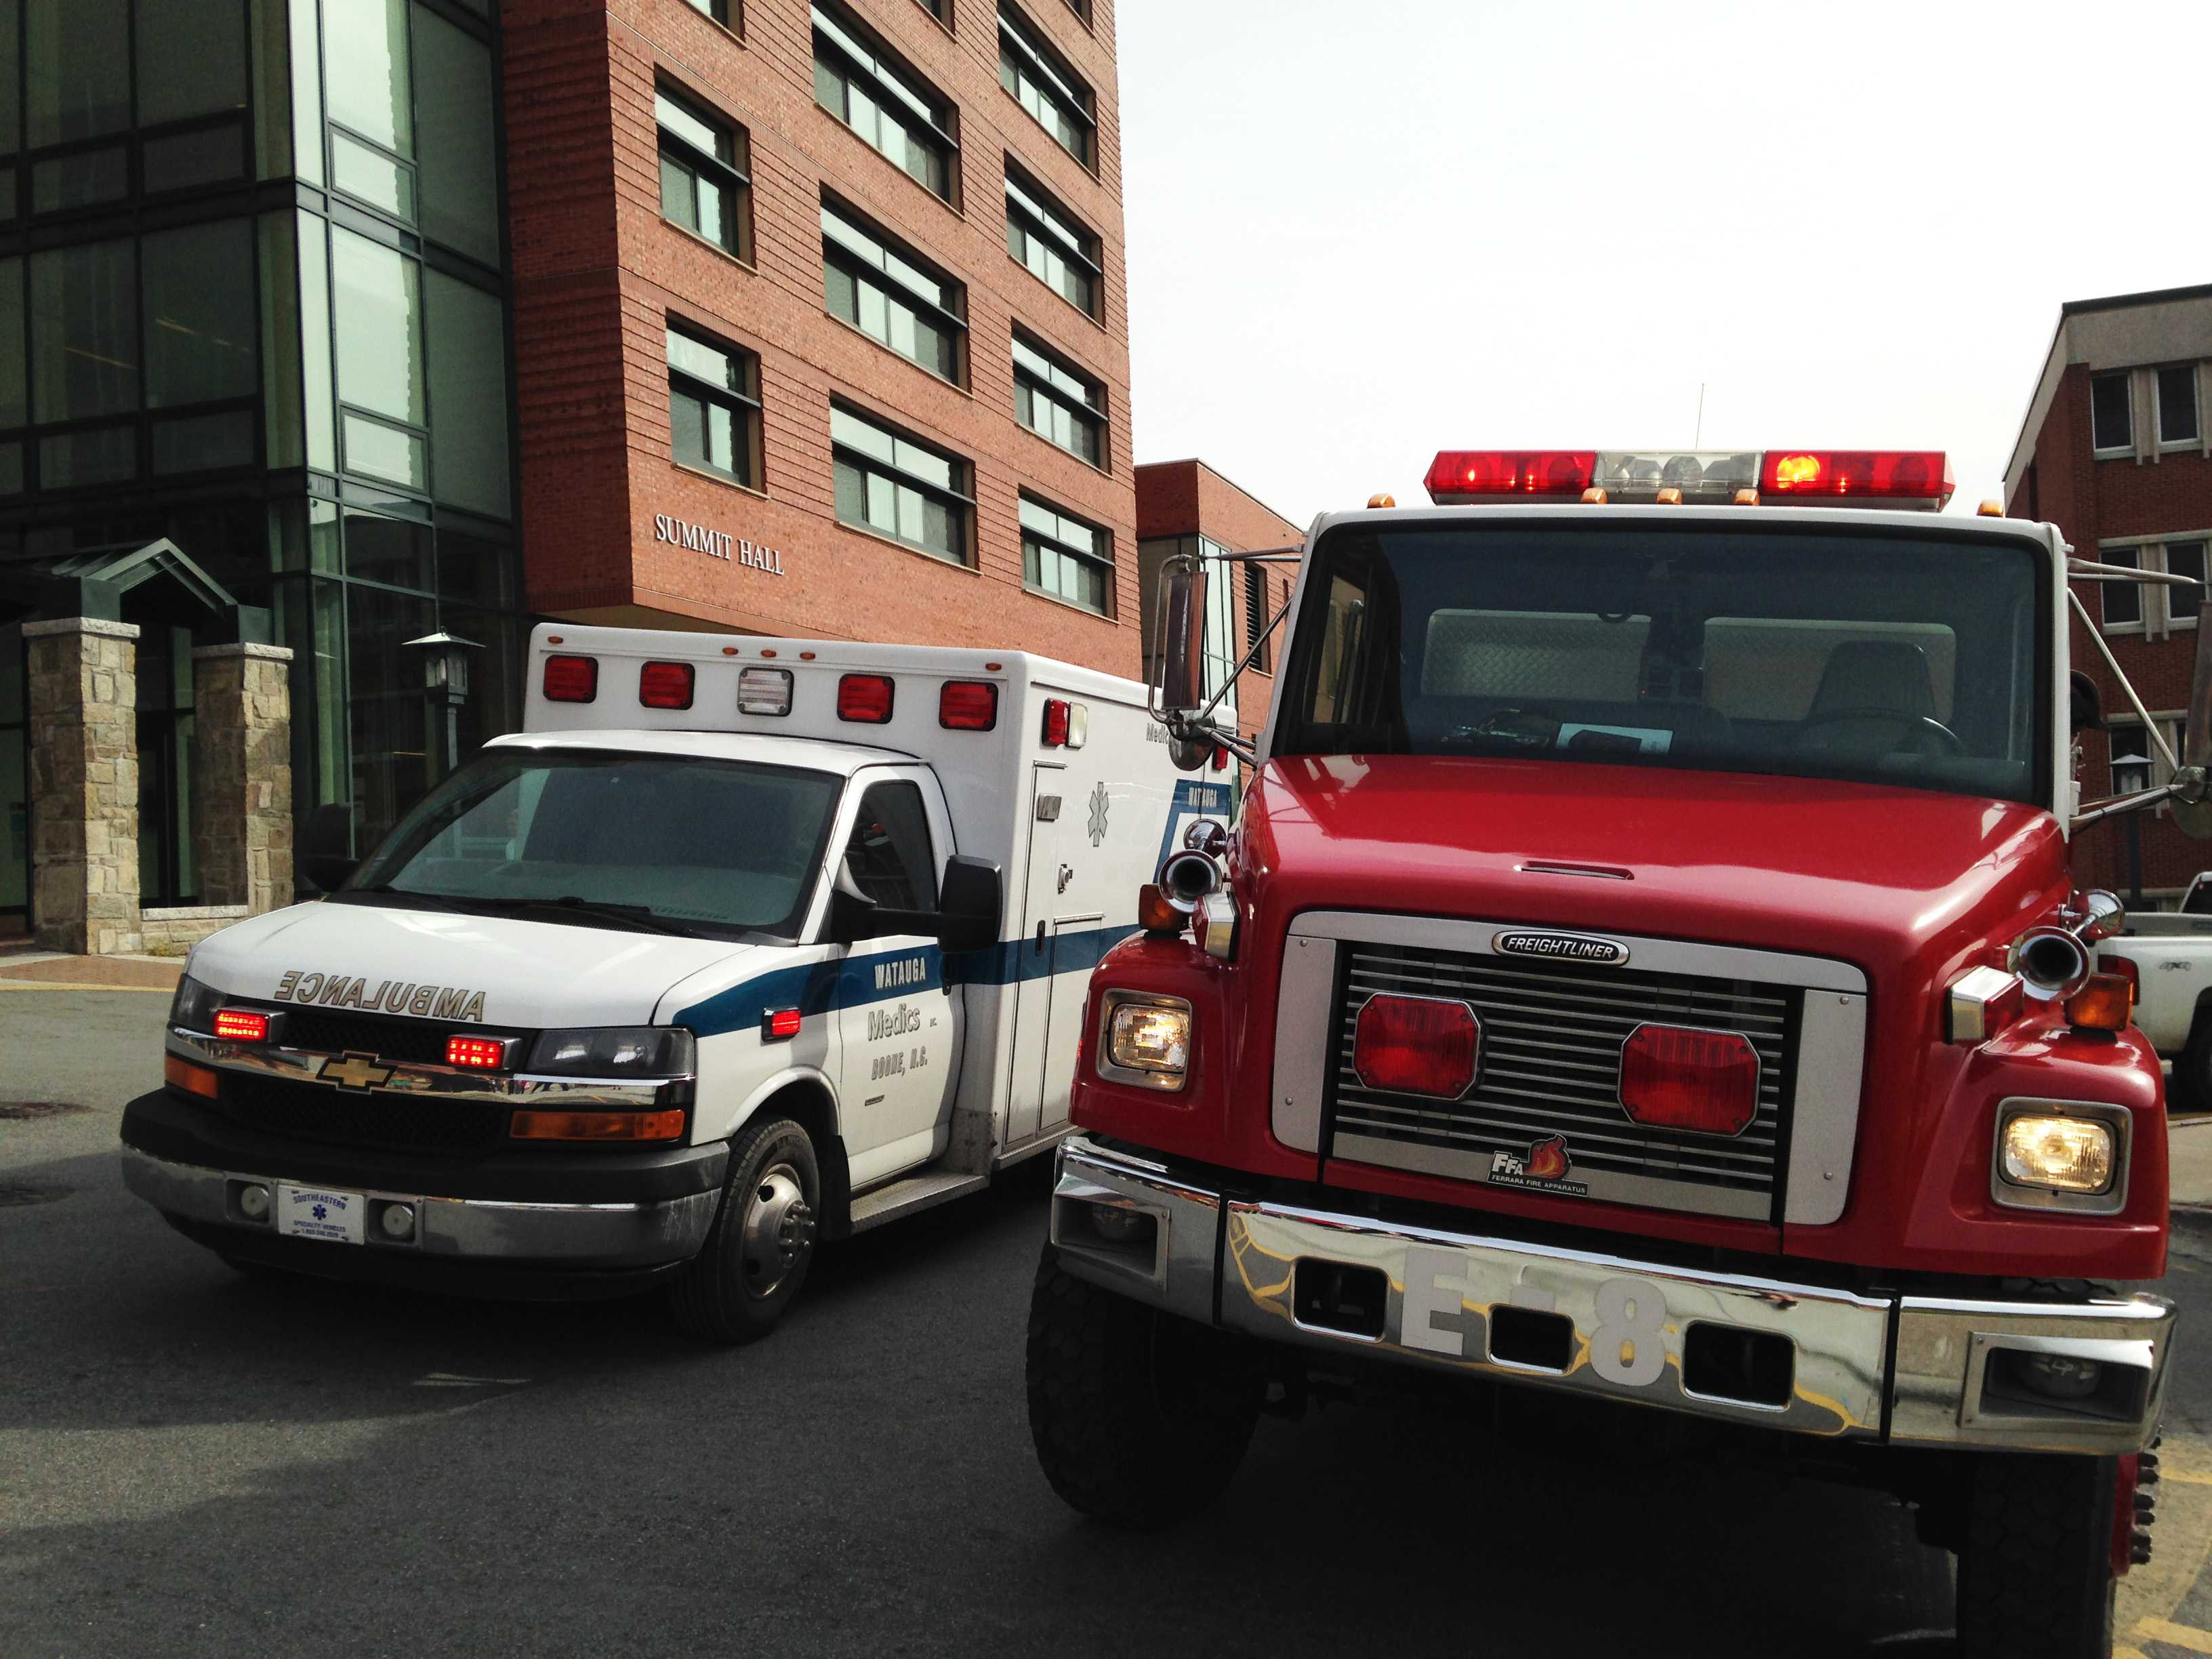 A Boone Fire Department fire truck and a Watauga Medics ambulance arrived on scene after Plemmons Student Union was evacuated Tuesday morning.